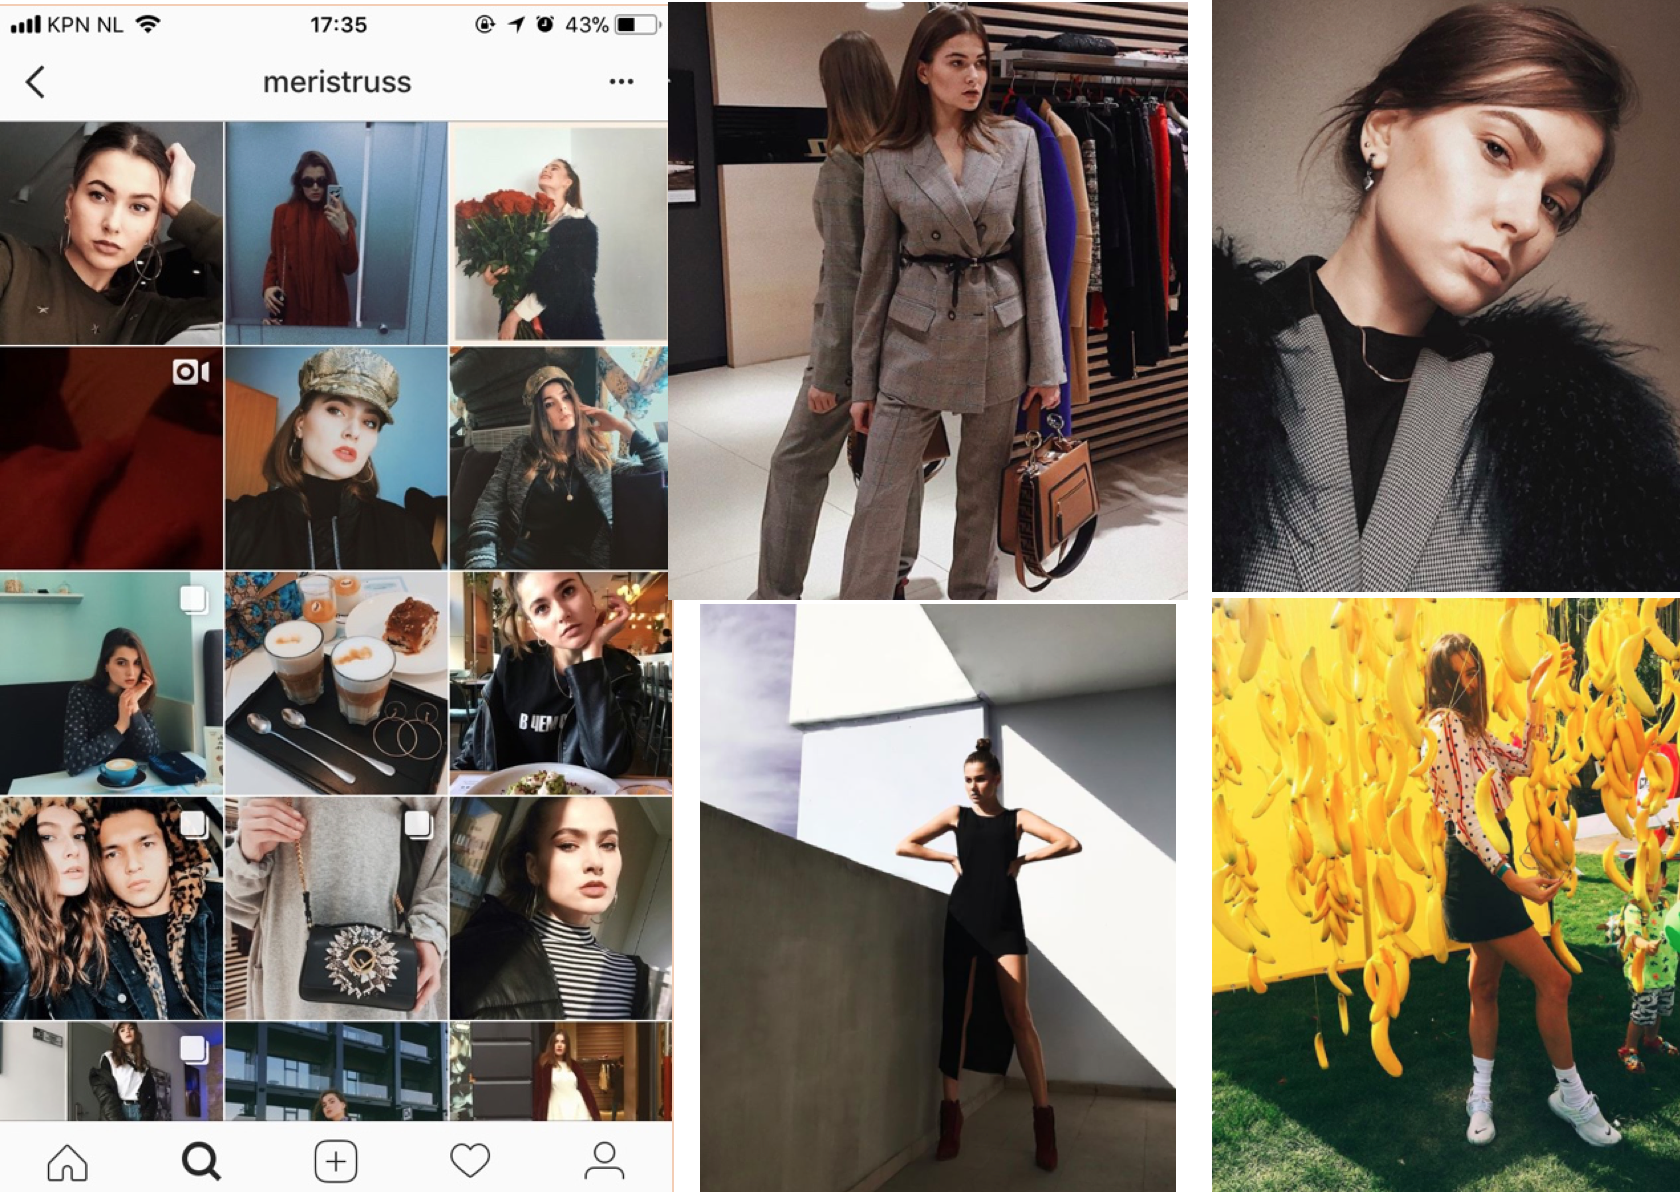 ukraine fashion Instagram account meristruss